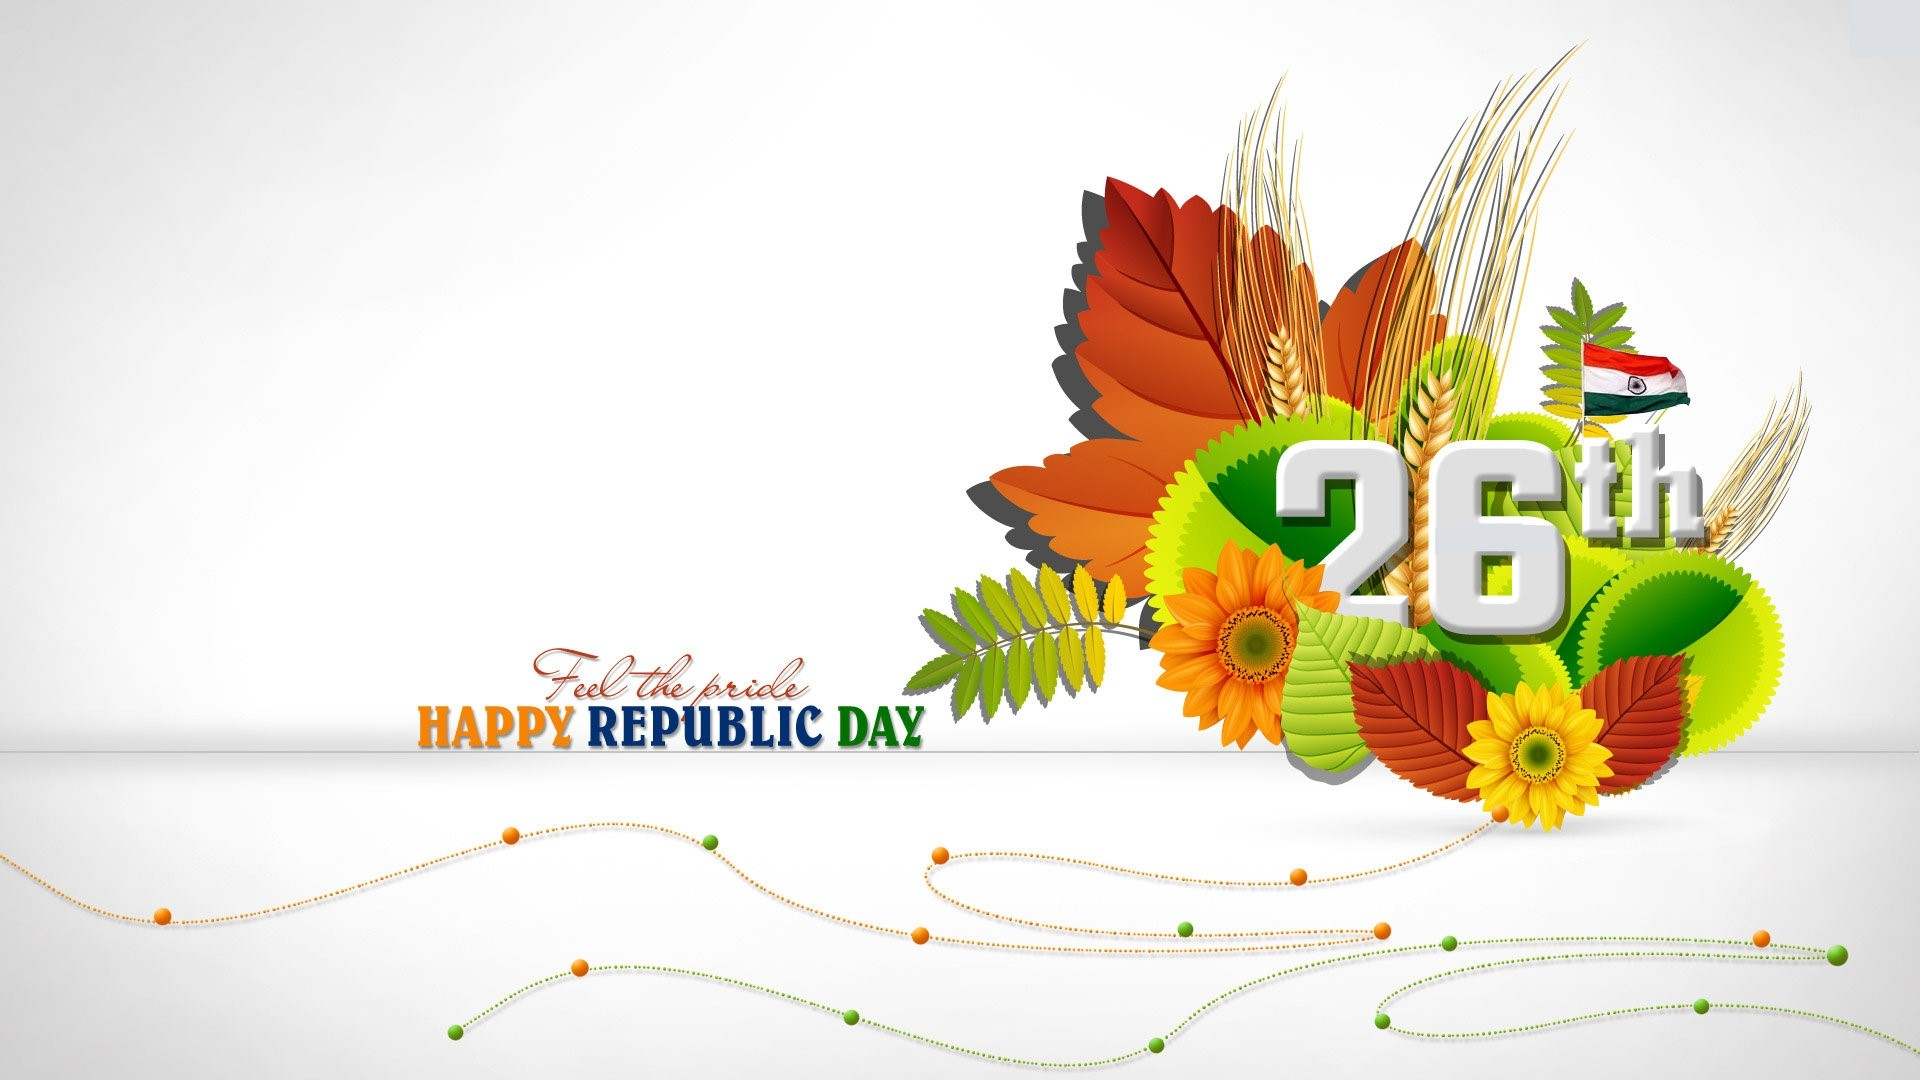 Happy january 2016 clipart clipart transparent 26 Jan) Happy 68th Republic Day Wishes Quotes Whatsapp Status Dp ... clipart transparent